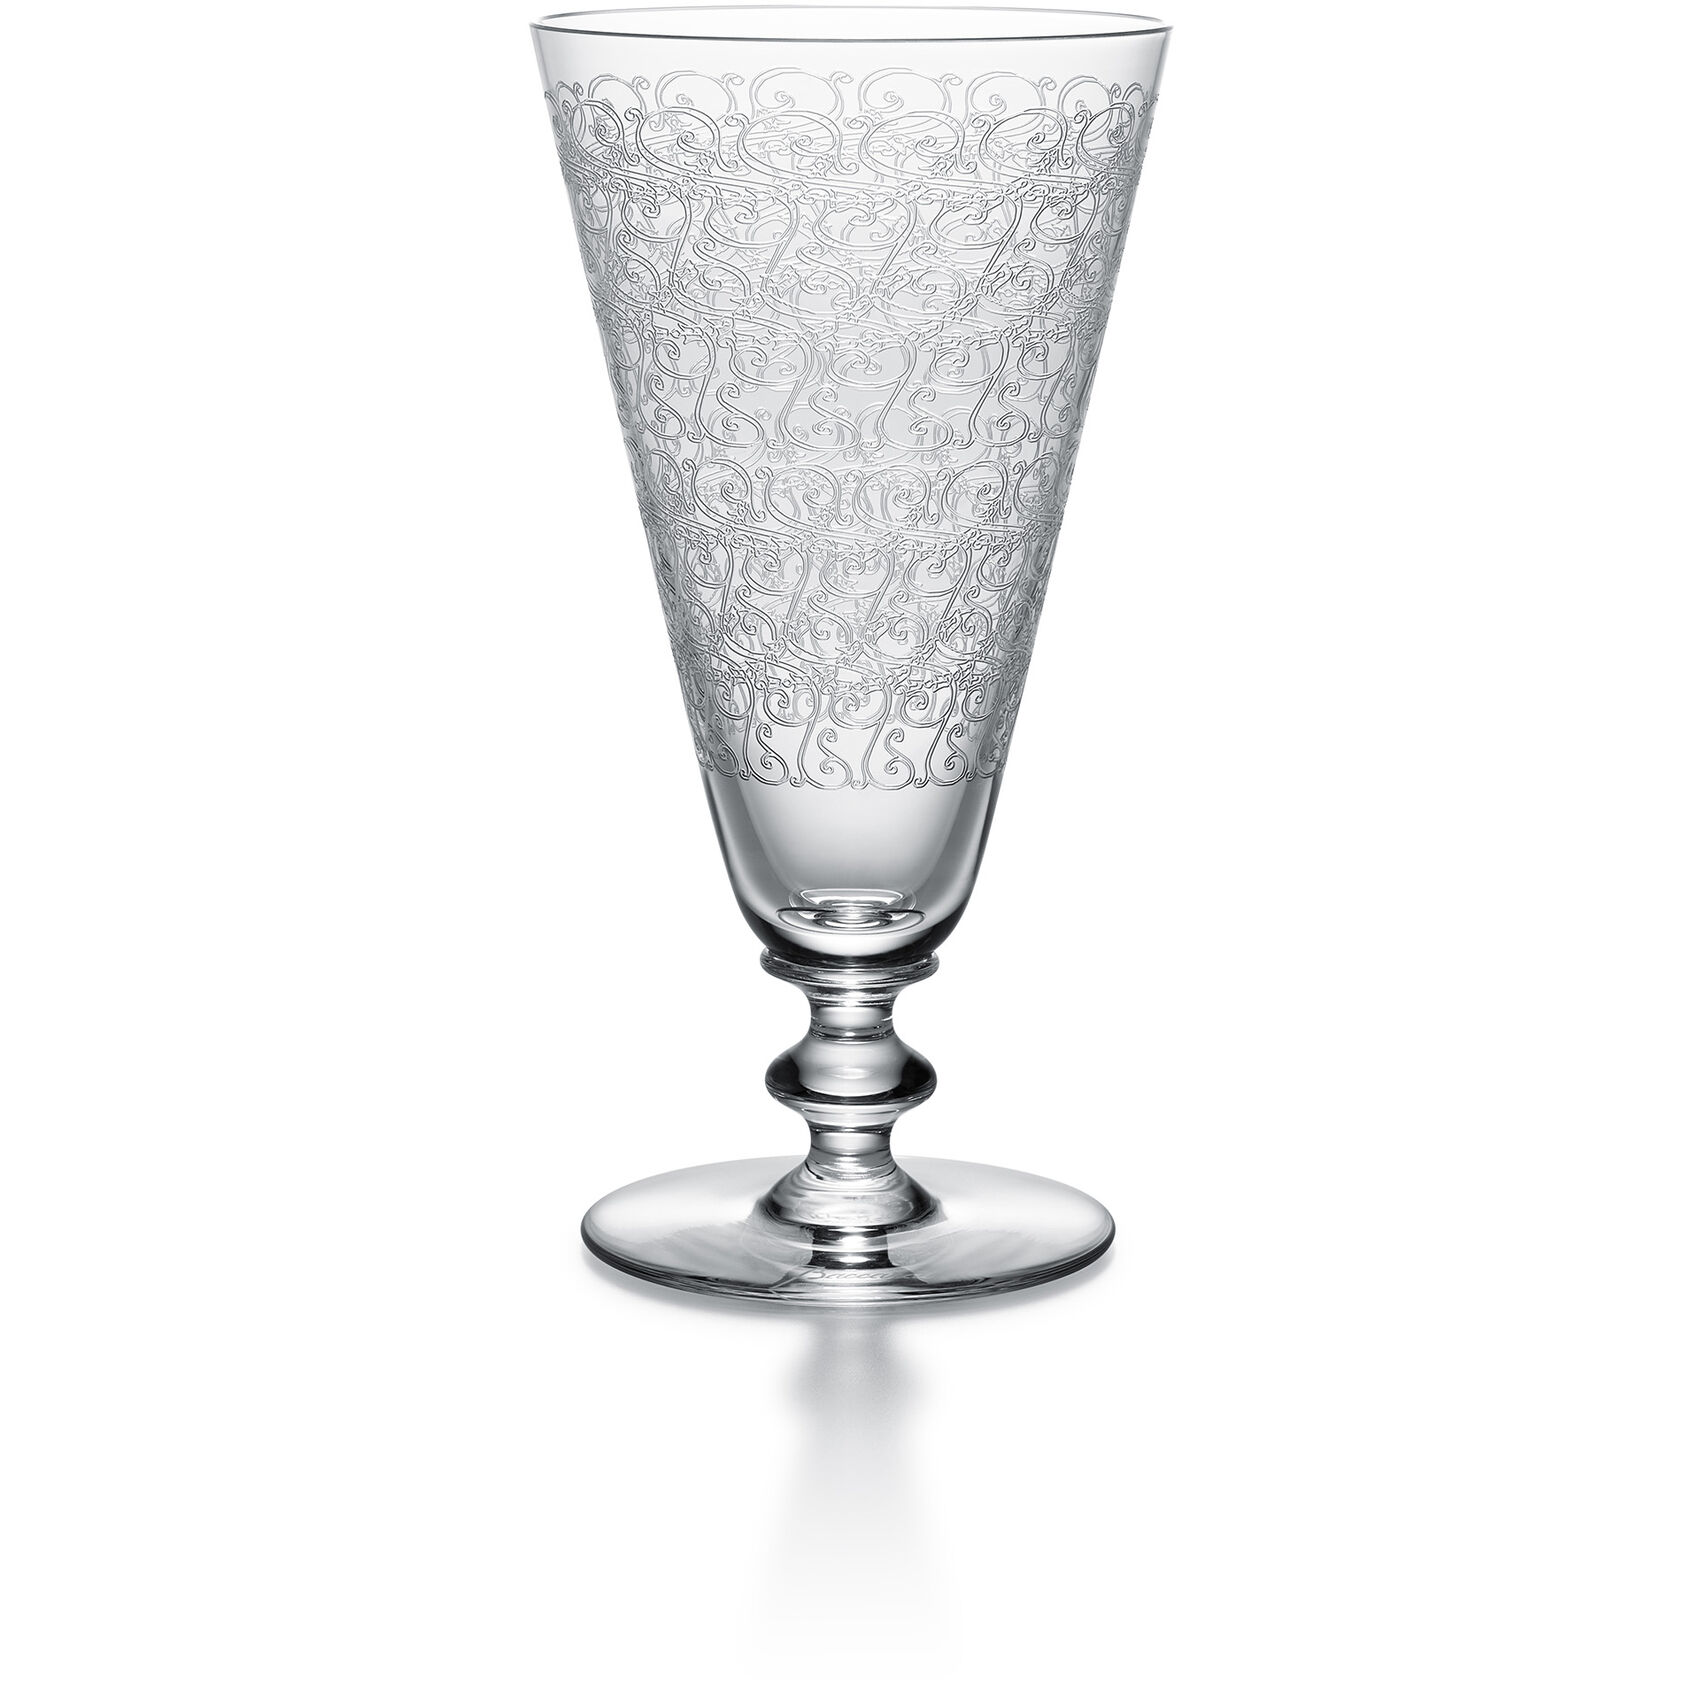 Rohan Flute Baccarat